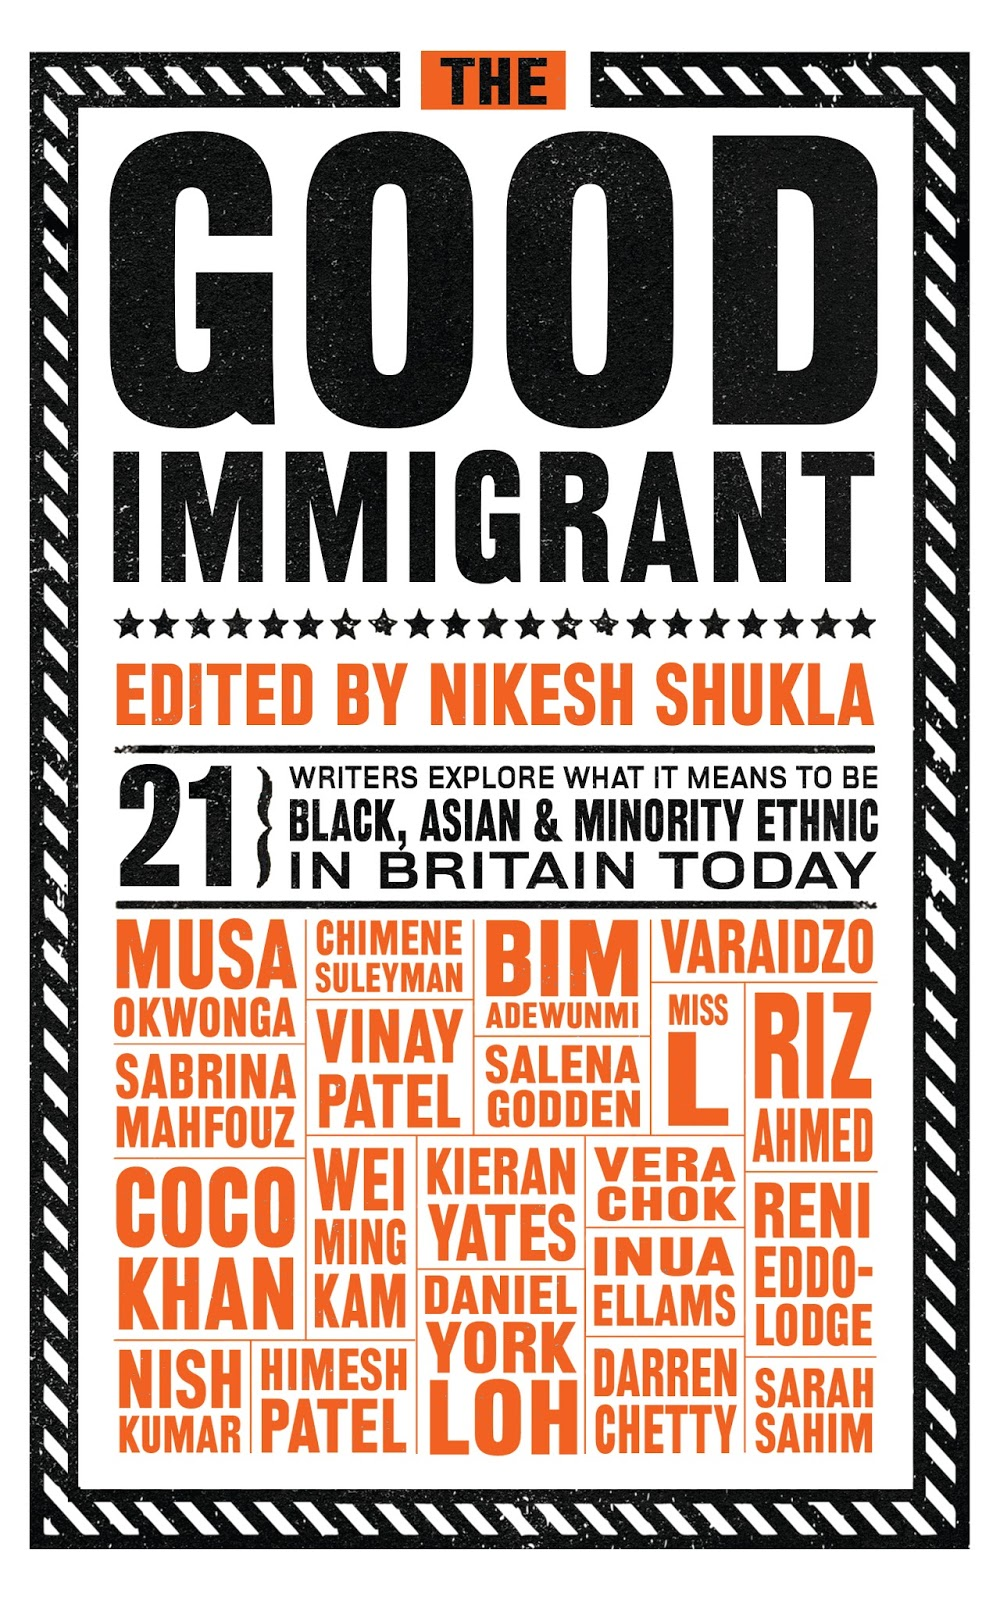 Alexandar Gingell's pick is collection of essays about being an immigrant in Britain.